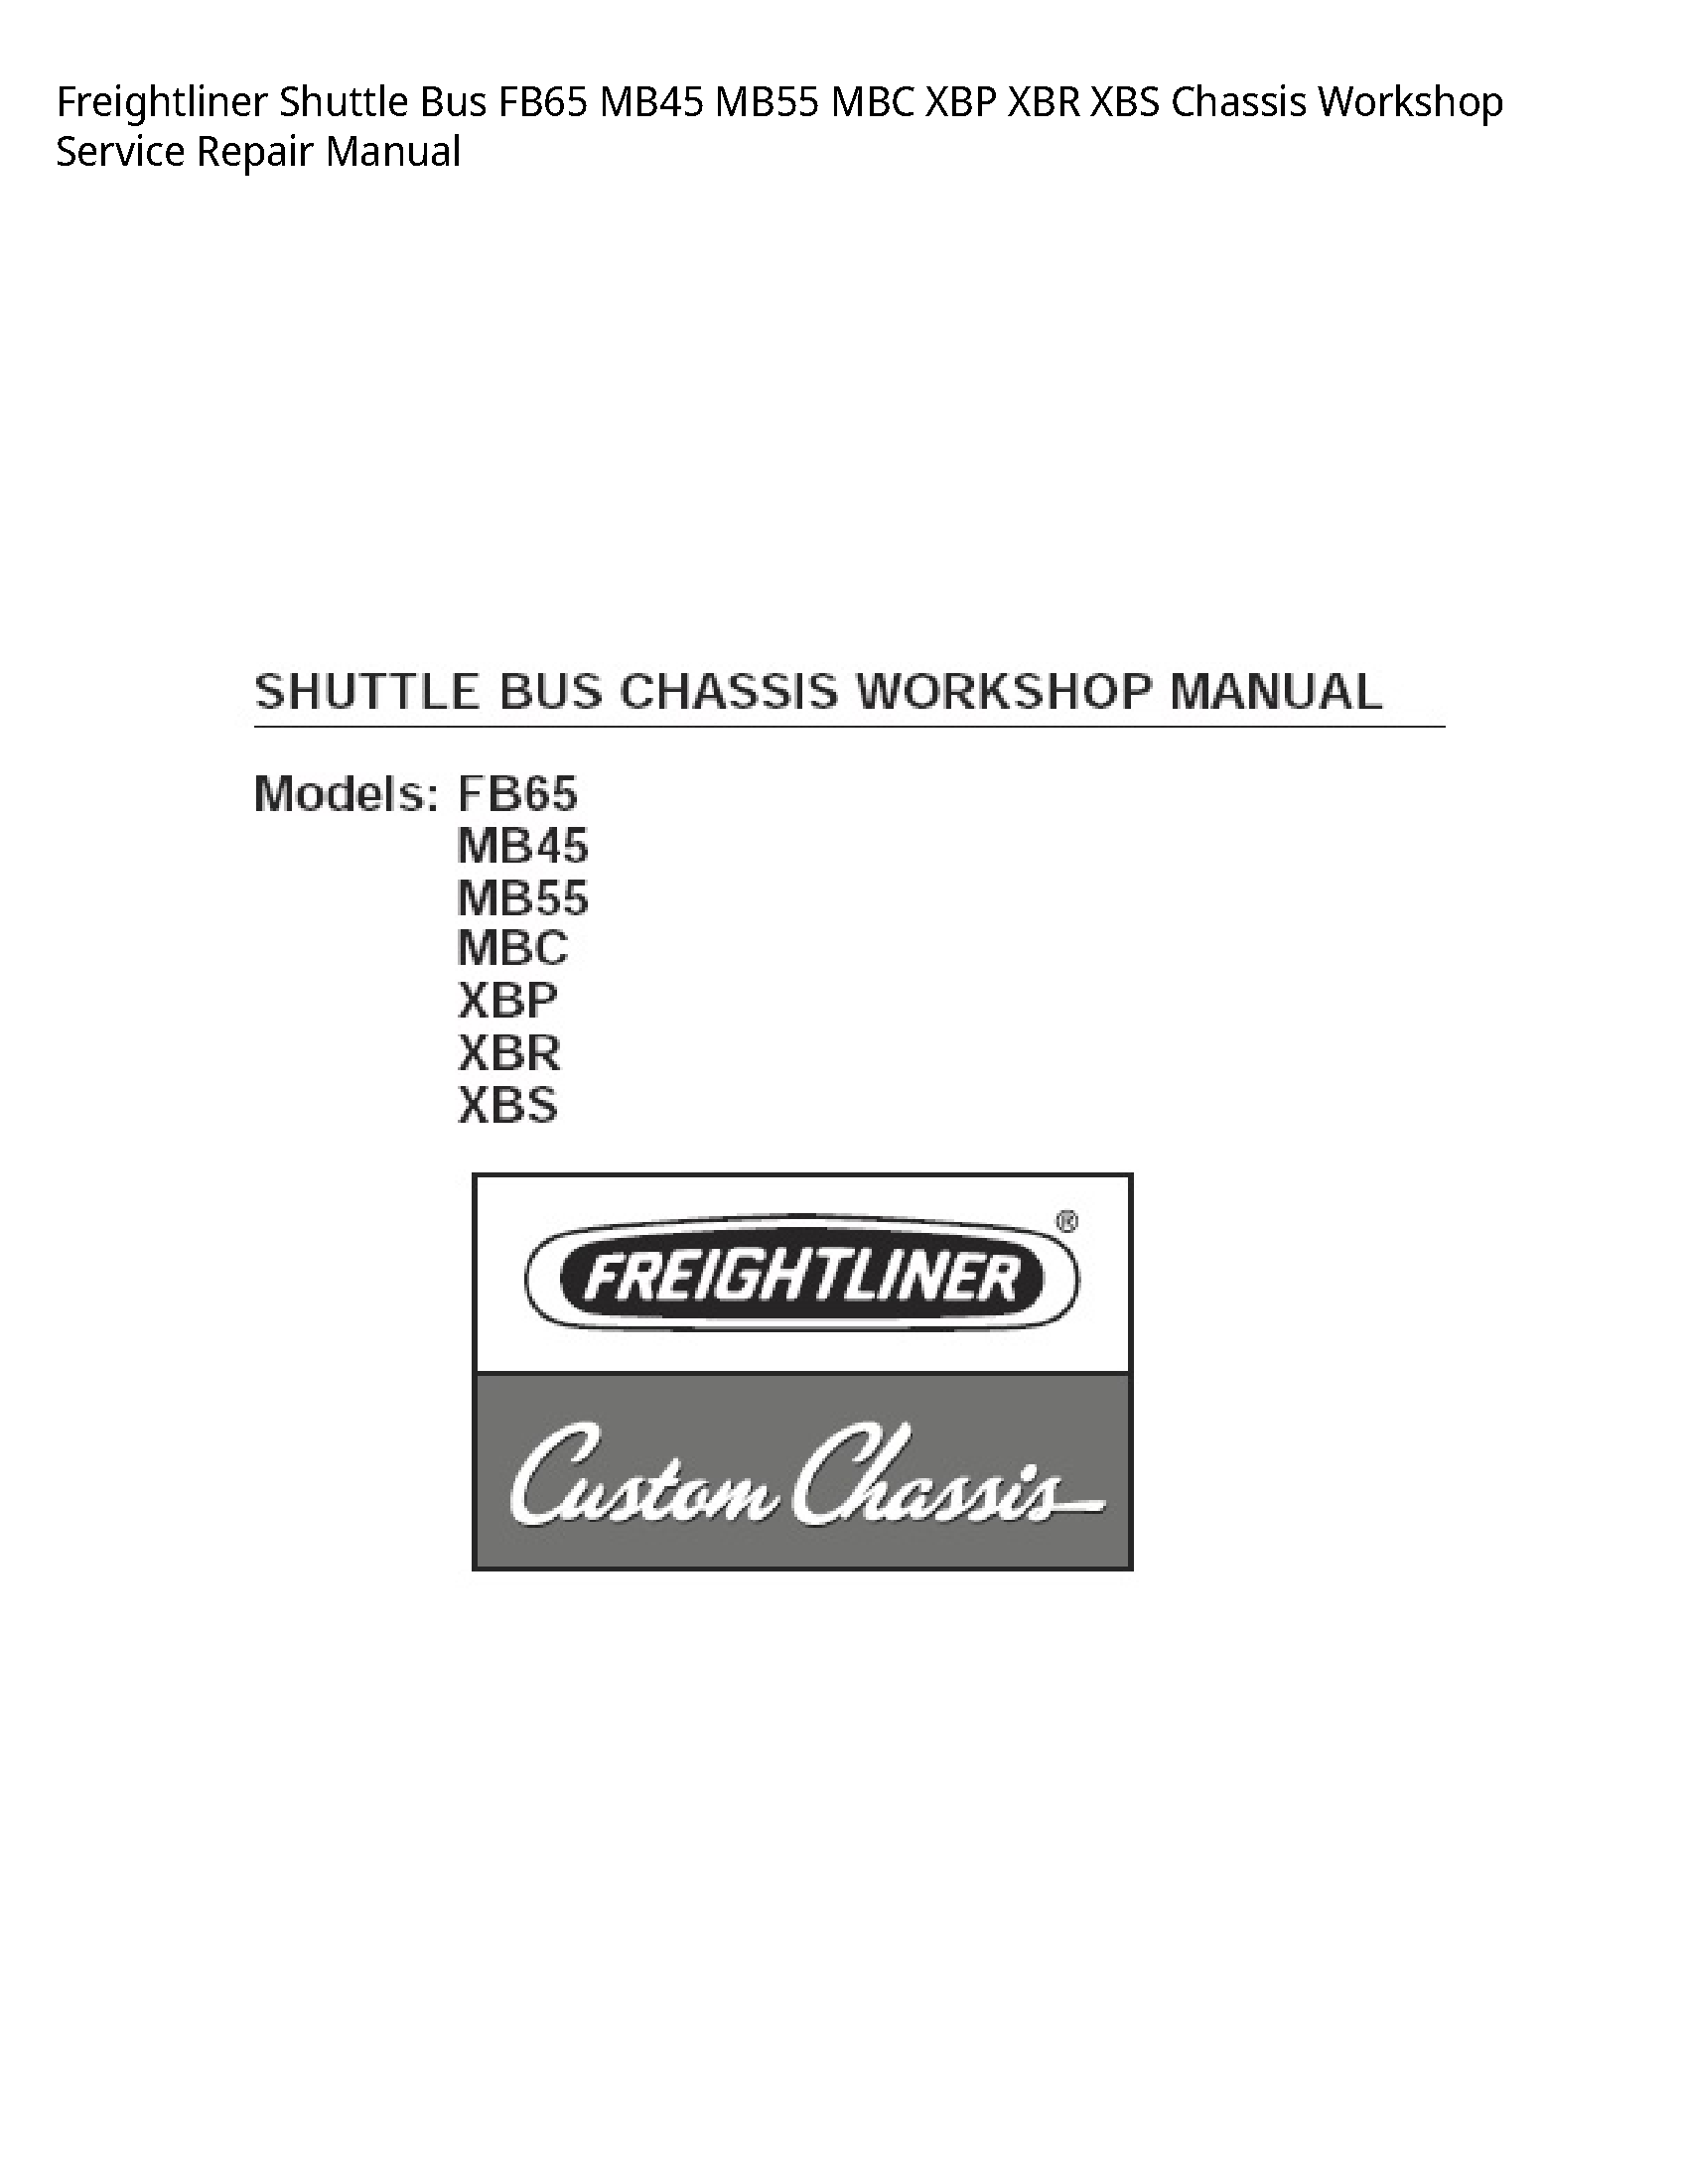 Freightliner FB65 Shuttle Bus MBC XBP XBR XBS Chassis manual